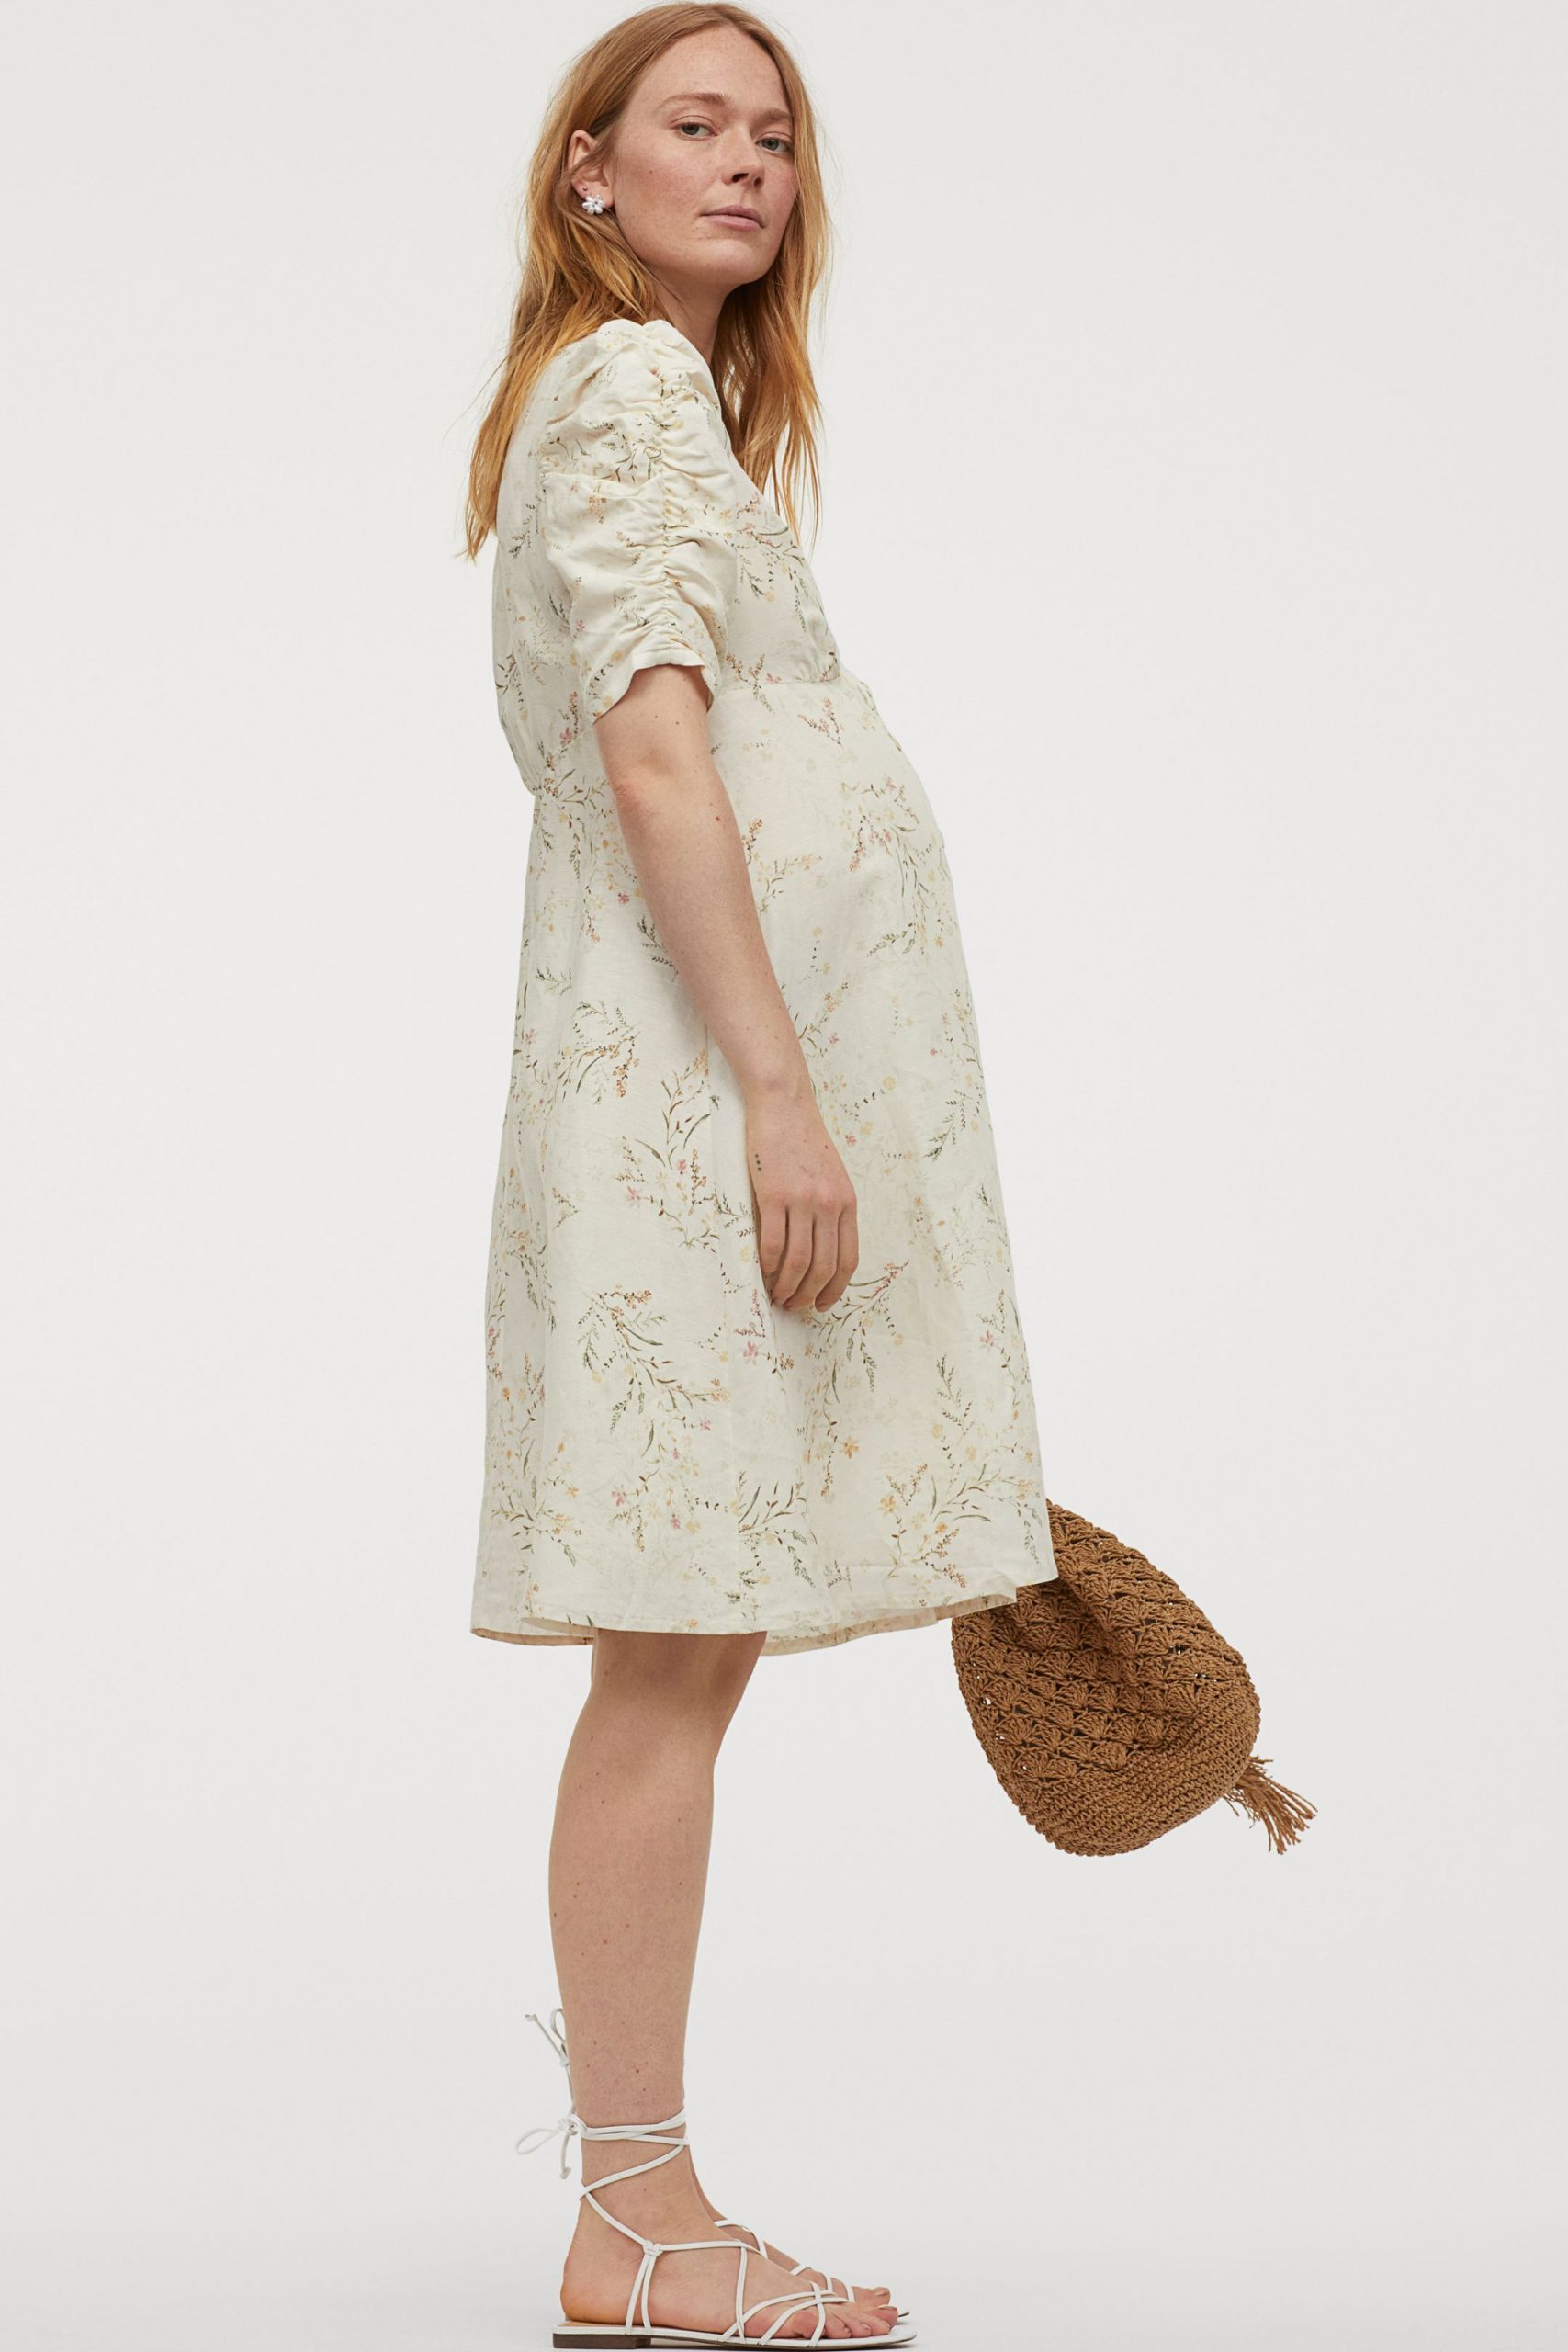 H&M MAMA Linen-blend dress was £39.99 now £20.00